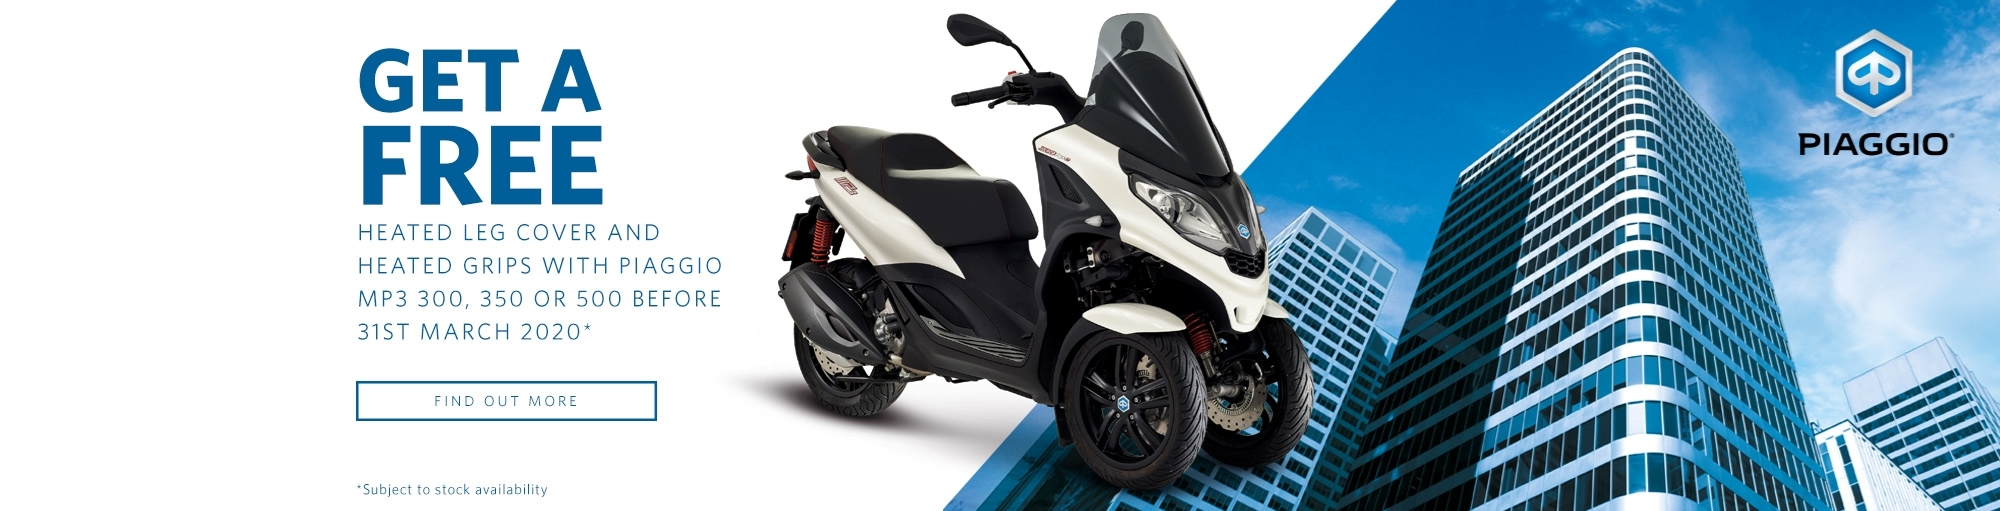 Piaggio Free Accessories